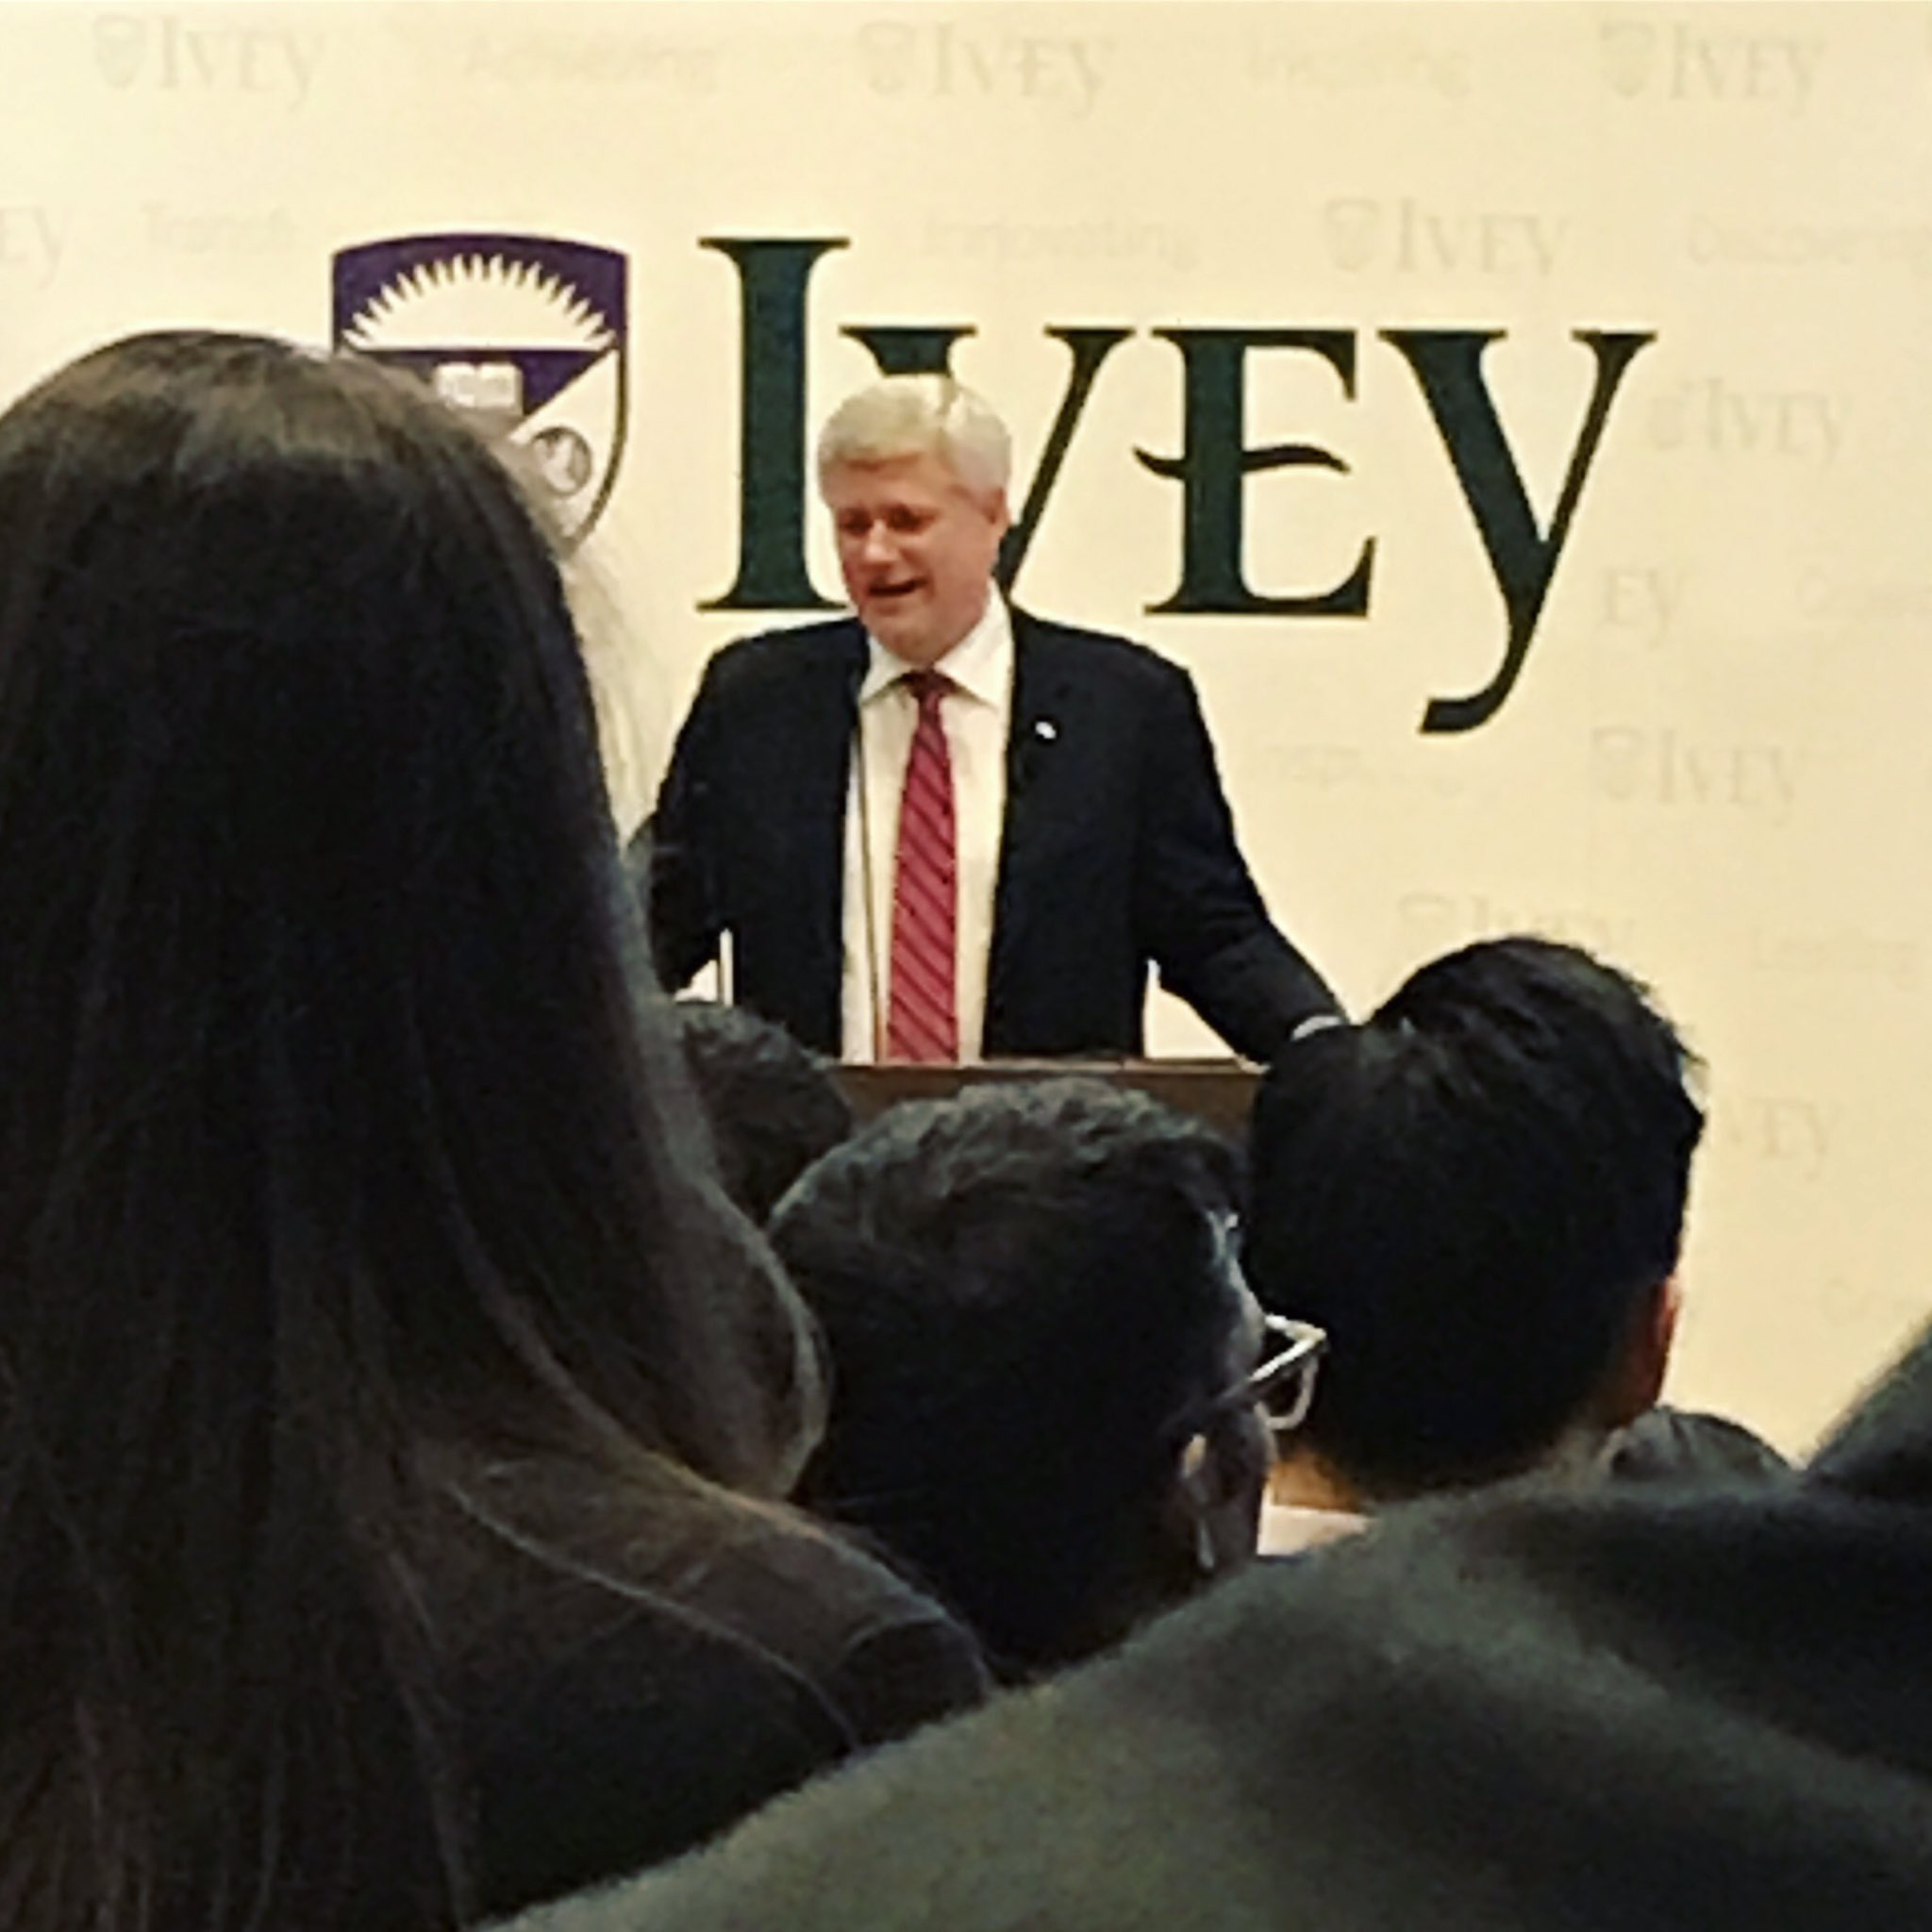 It was awesome to have our former Prime Minister Stephen Harper visit us today #degree2career #iveybusiness #ldnont https://t.co/7p34RMKBrB